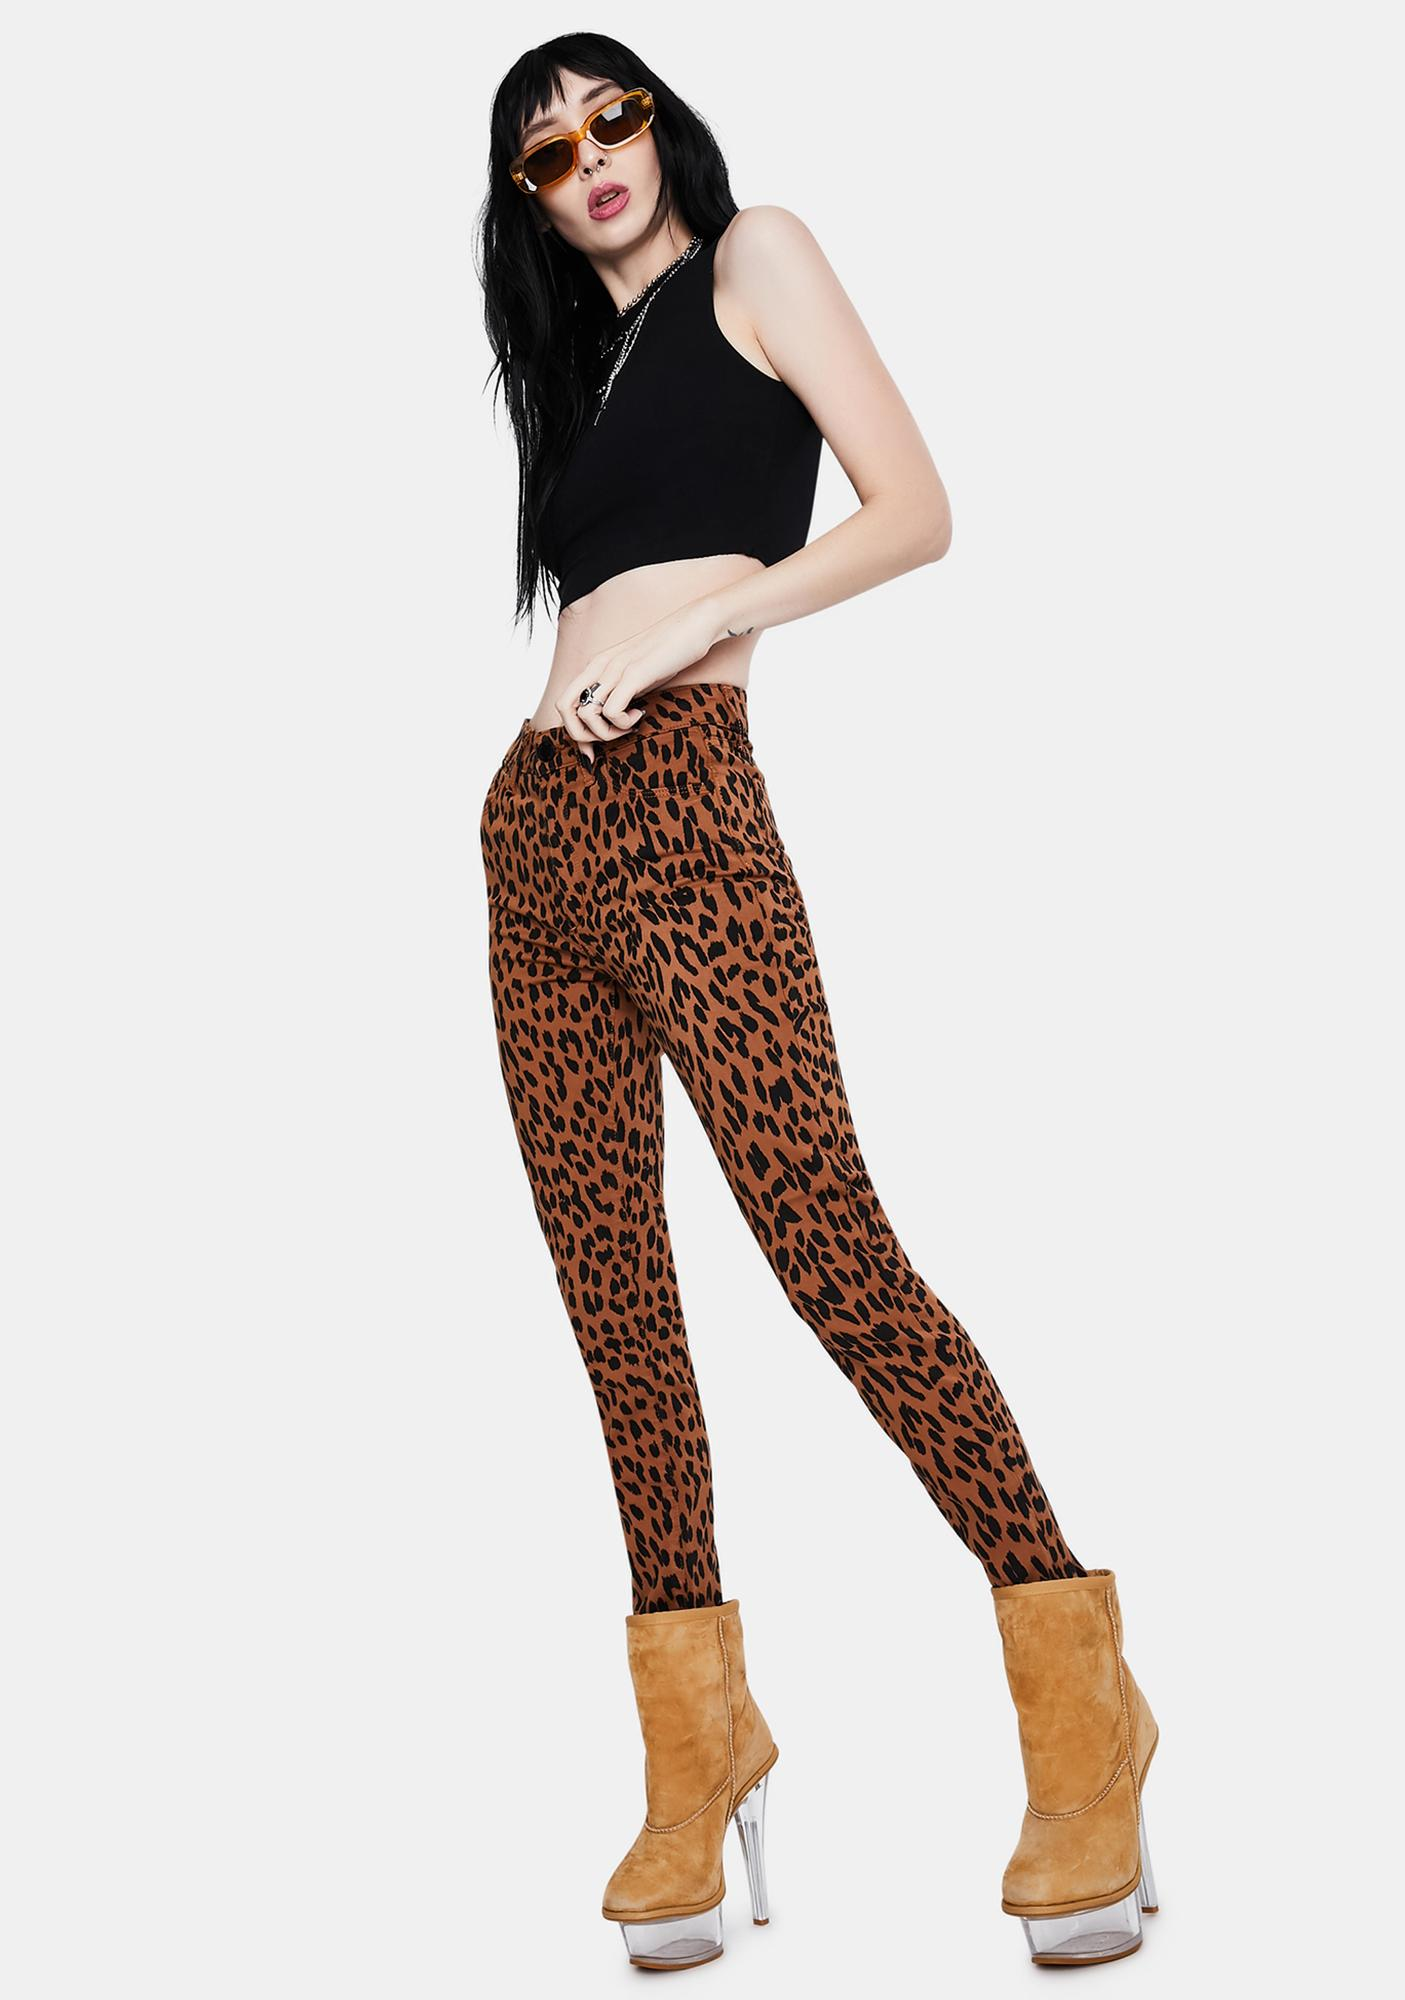 Articles of Society Heather High Waisted Jeans